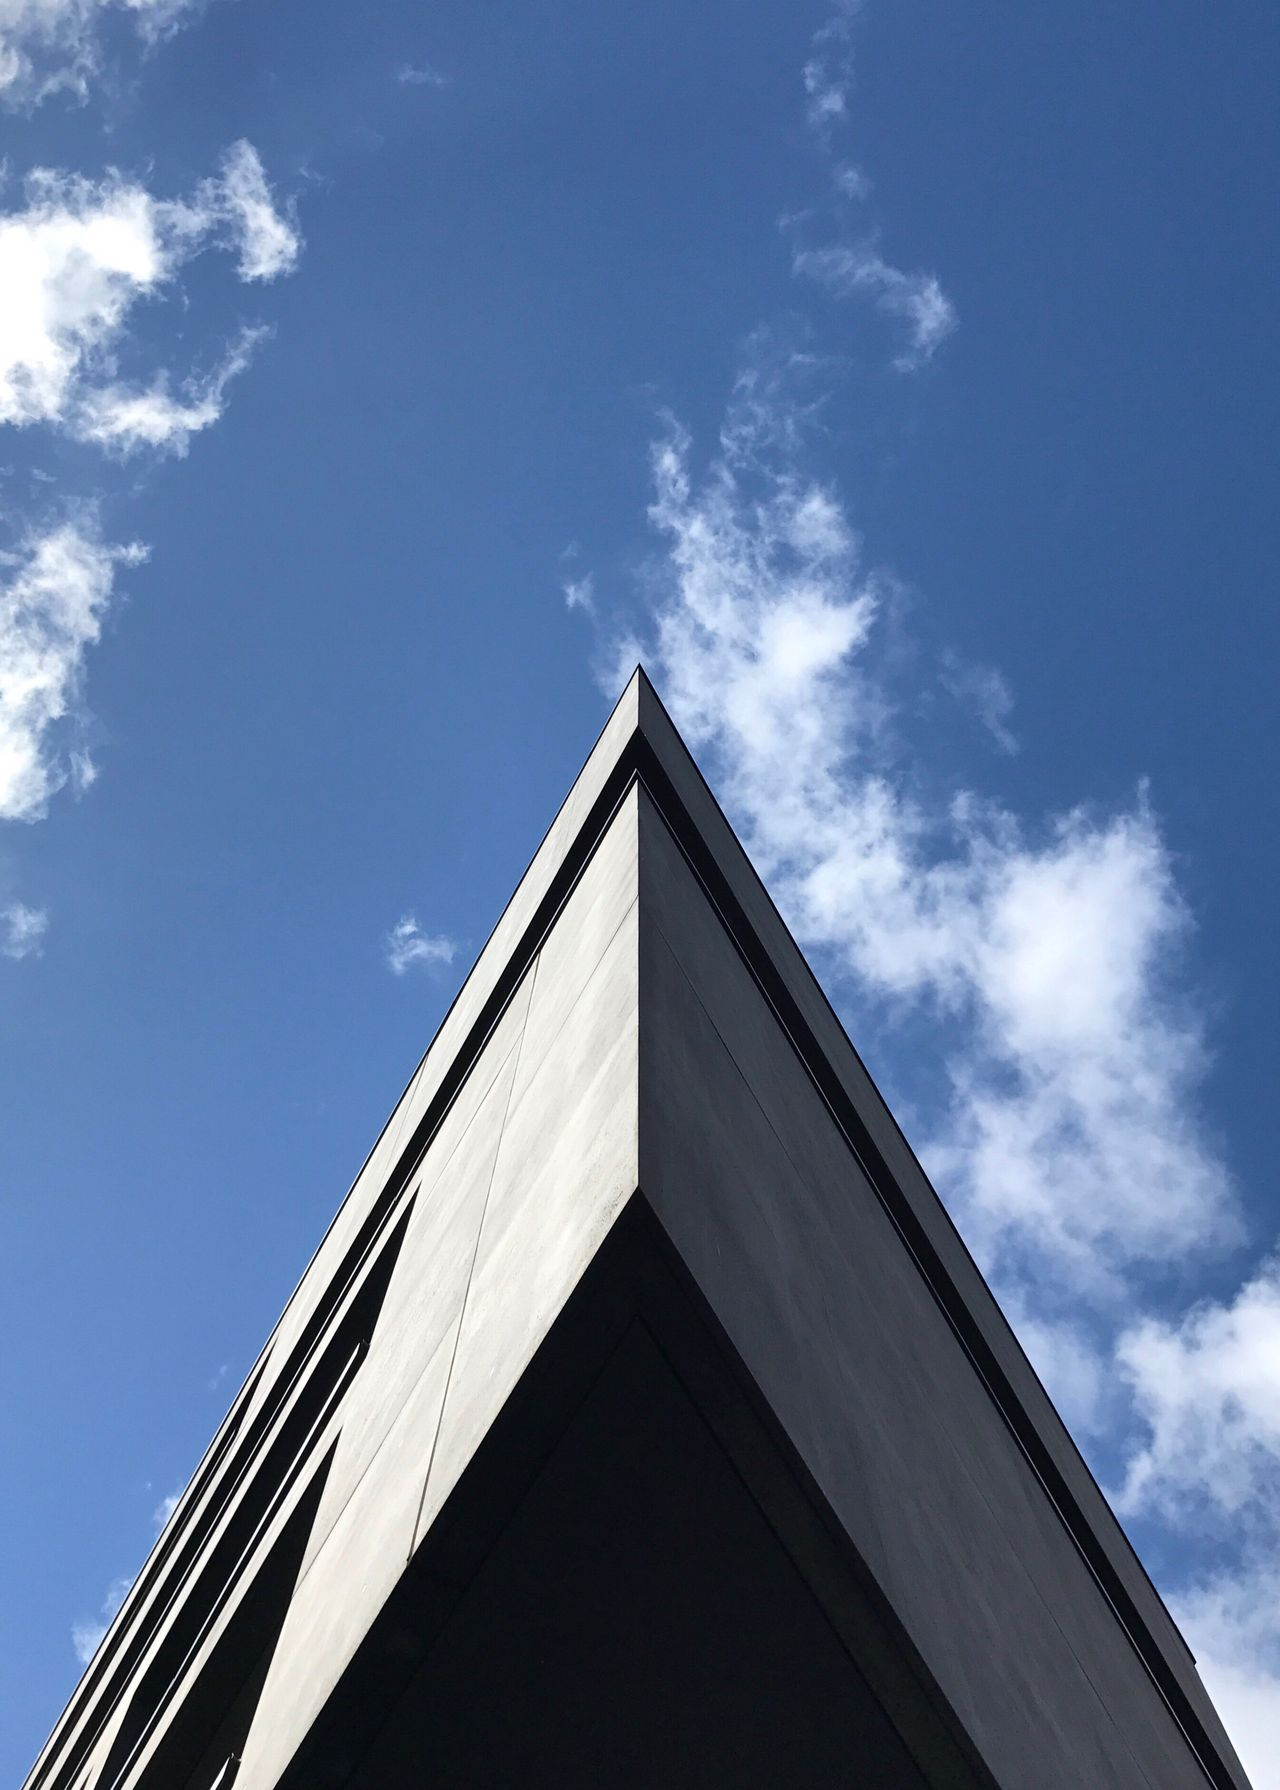 Low Angle View Architecture Sky Concrete Minimalism Symmetry Geometric Shape Triangle Grey Light And Shadow Nofilter Berlin Blue Blue Sky